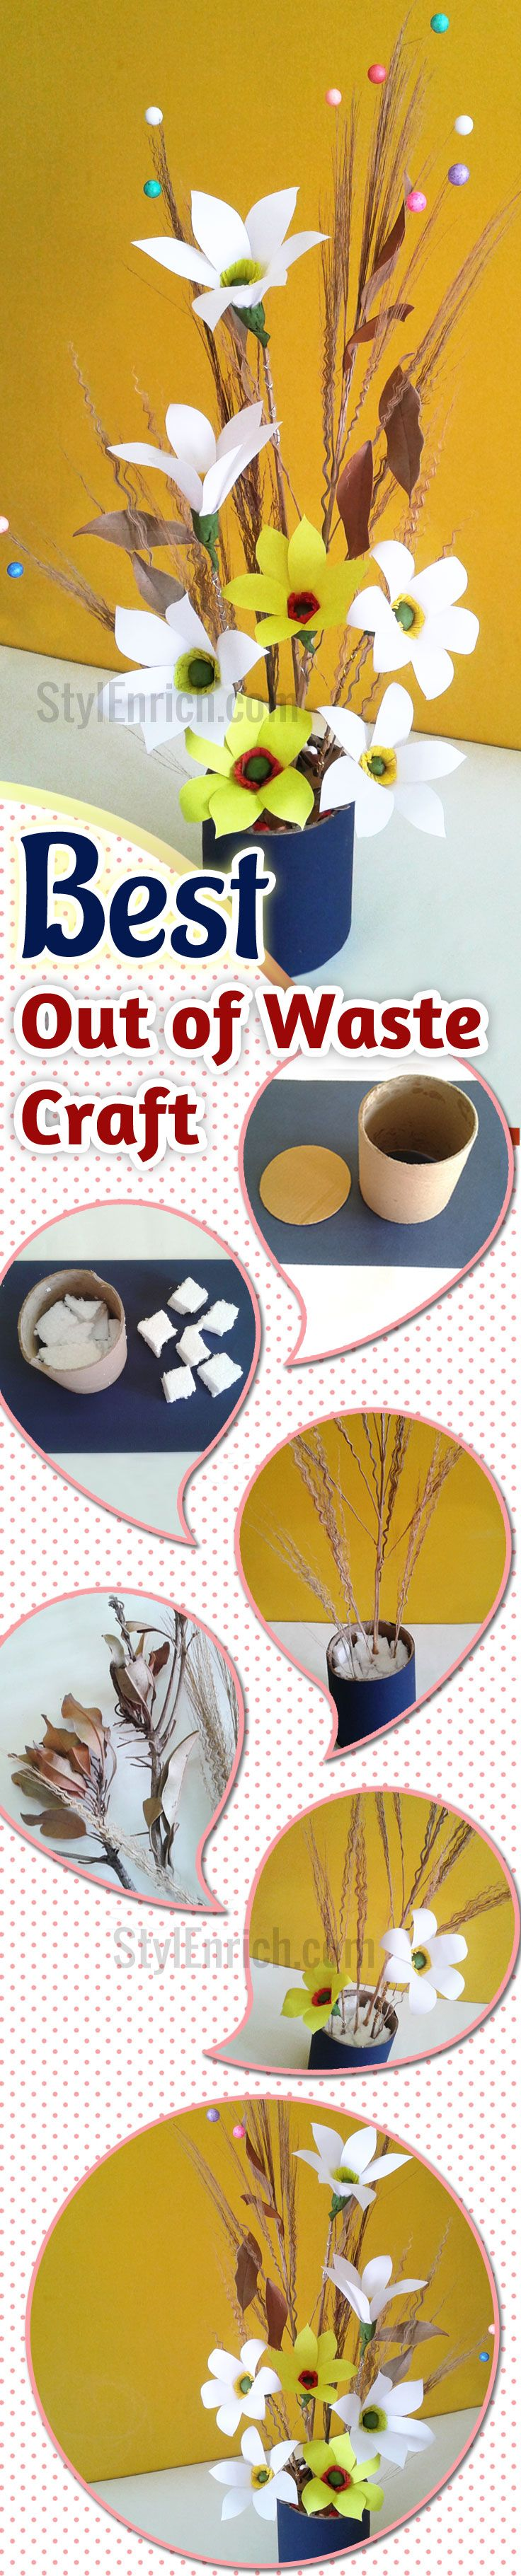 49 best images about best out of waste on pinterest for Things best out of waste